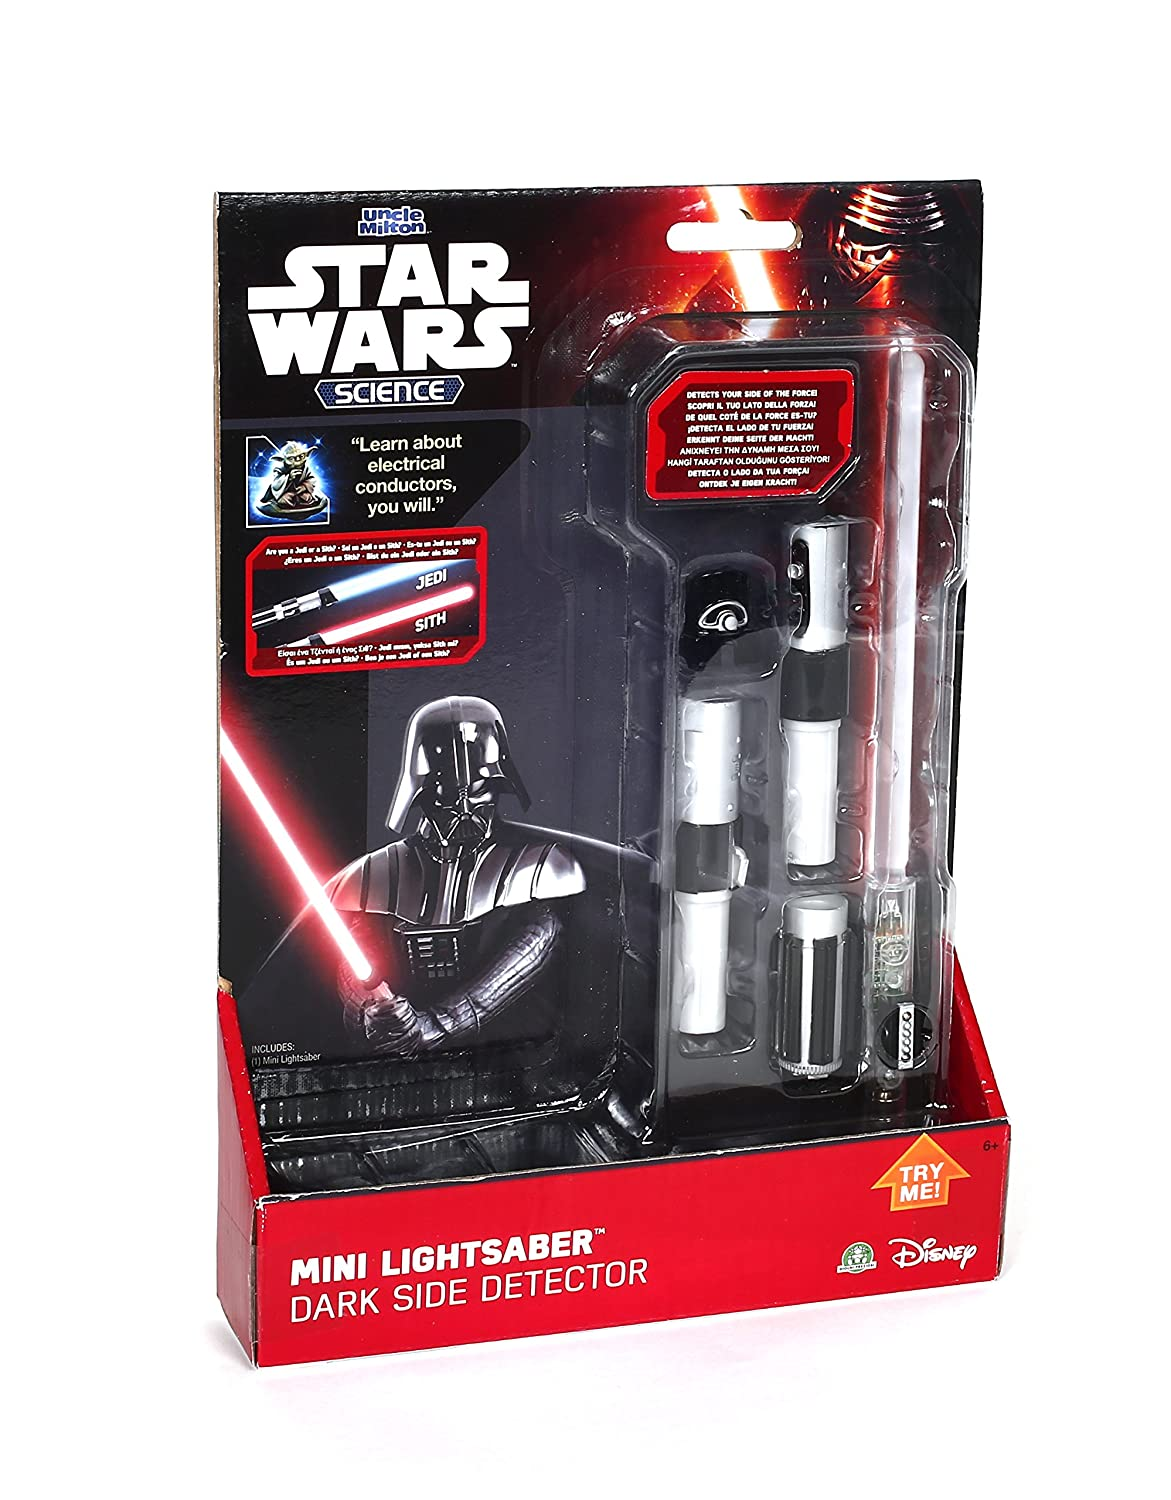 Star Wars Uncle Milton Science Mini Dark Side Detector Lightsaber Light Flair Leisure Products 75091